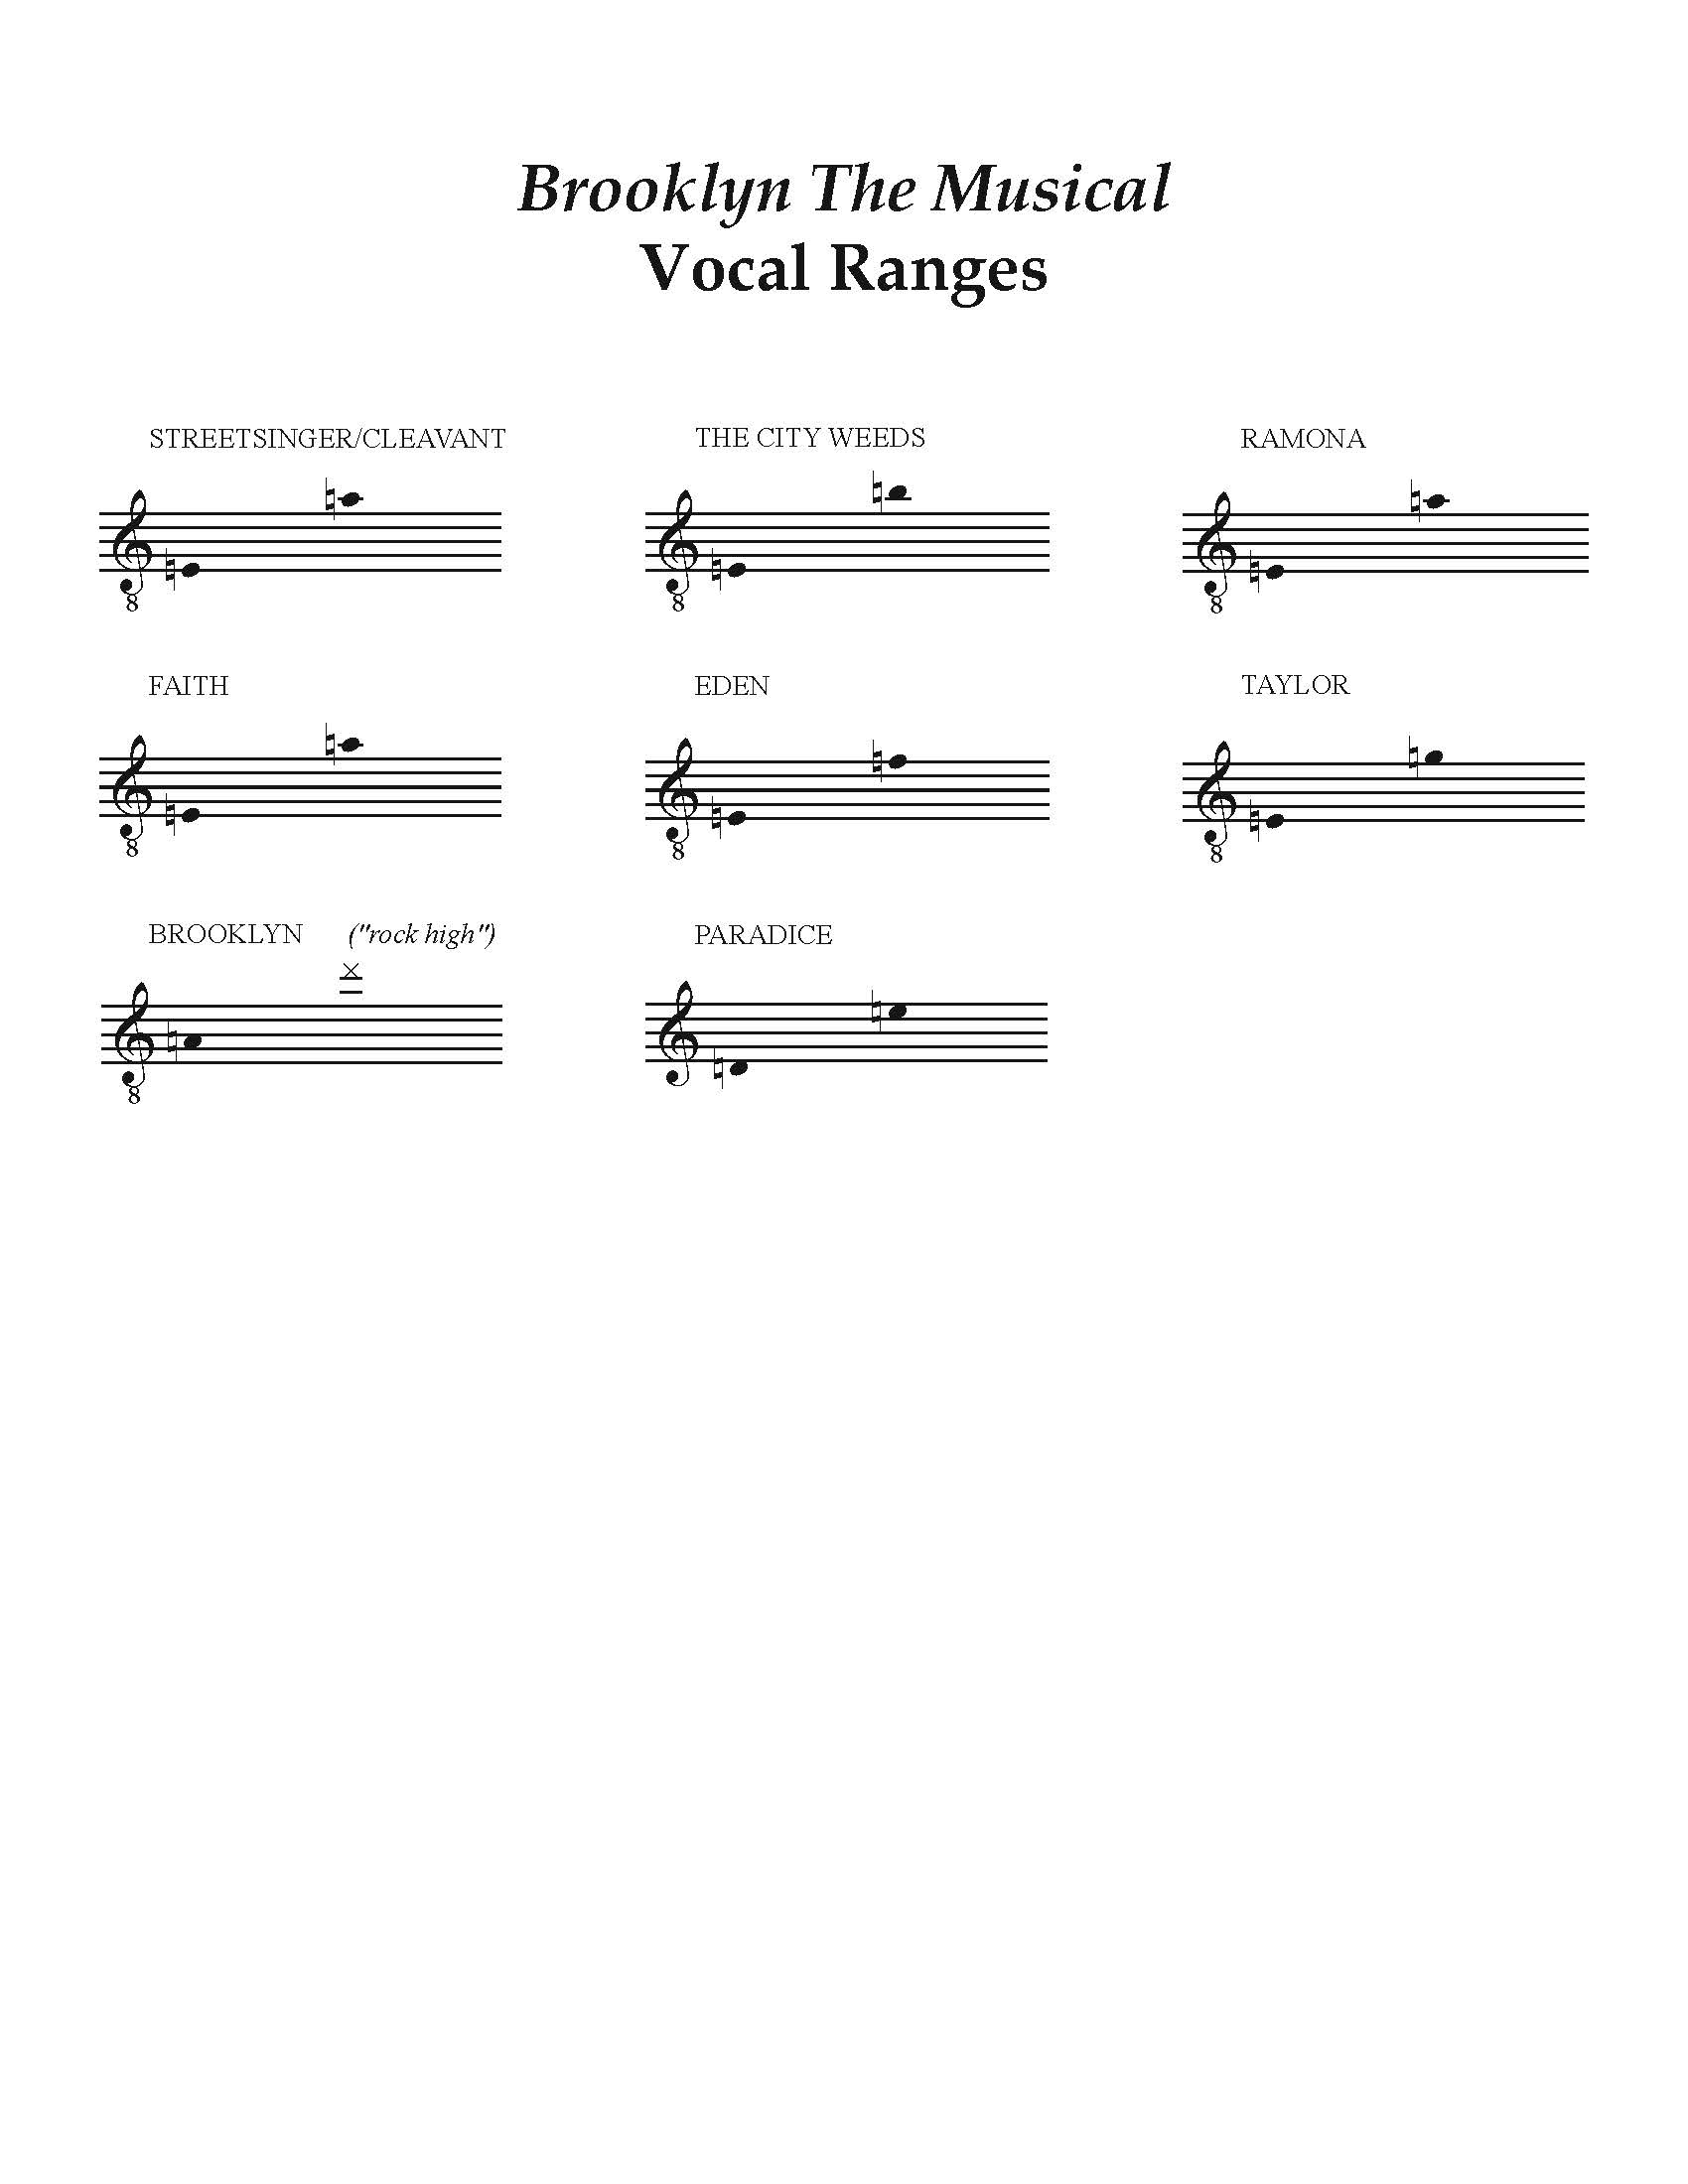 BKLYN the Musical Vocal Ranges